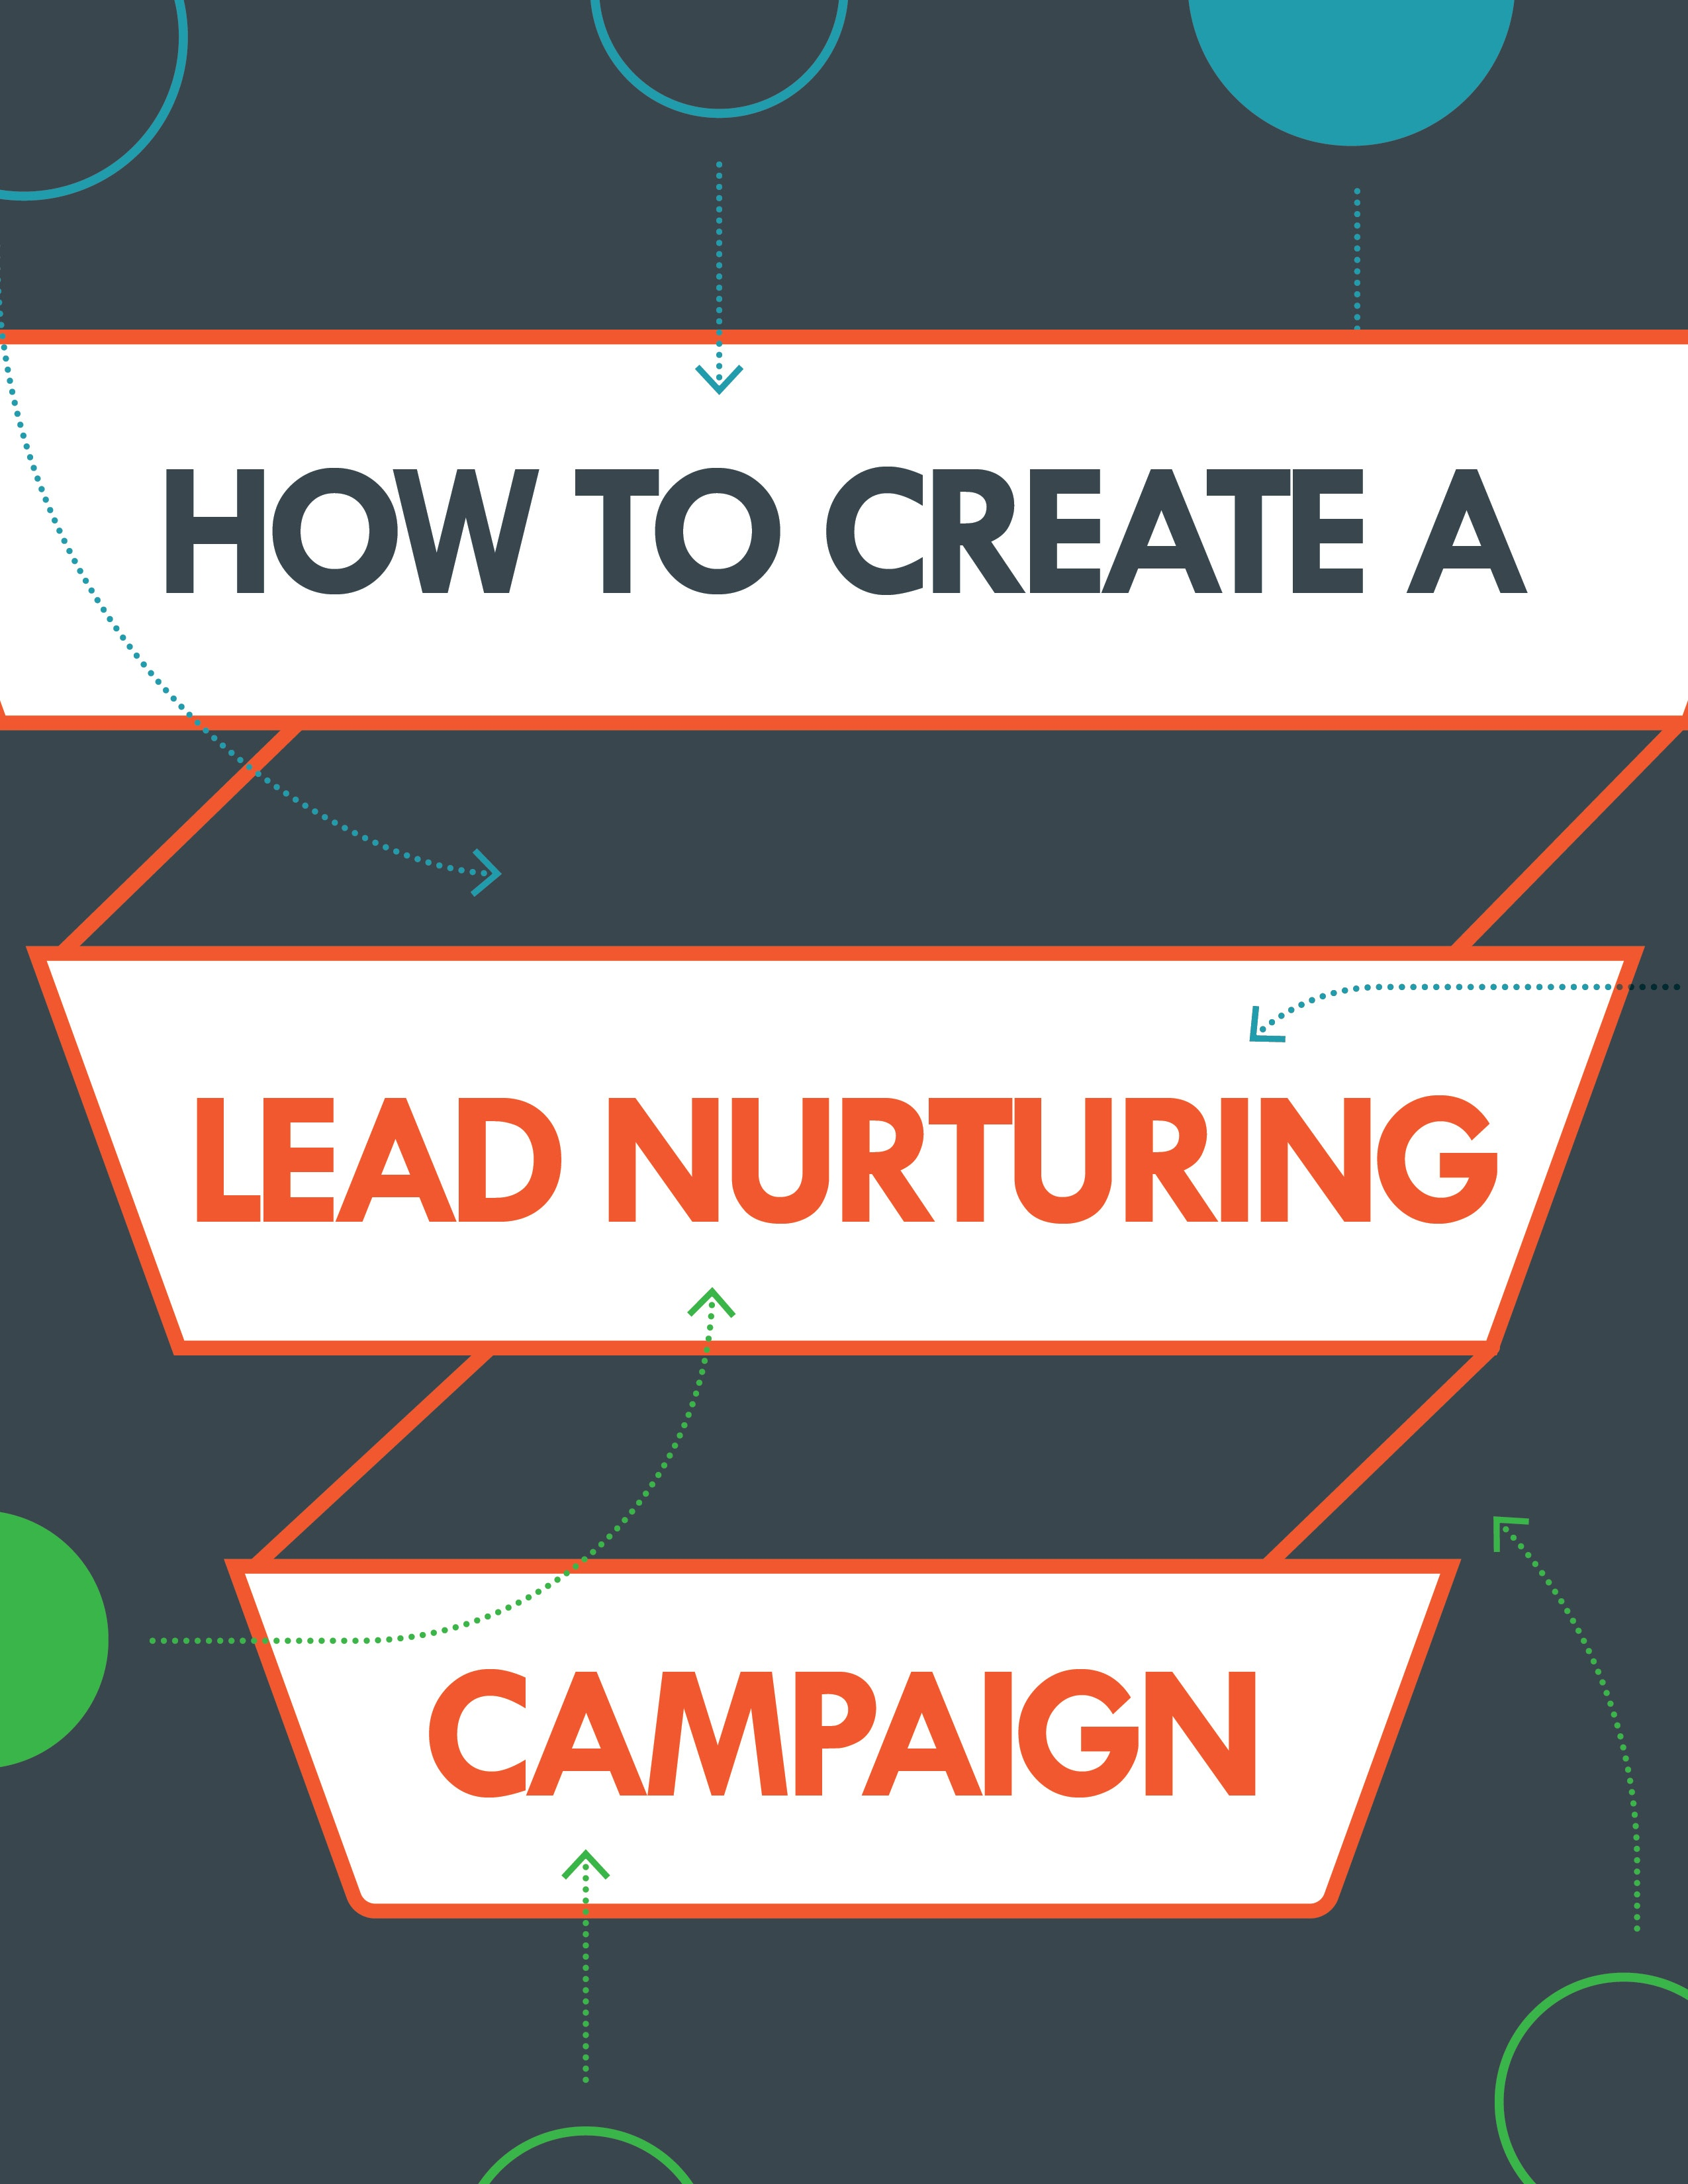 how-to-create-nurture-campaign-guide.jpg